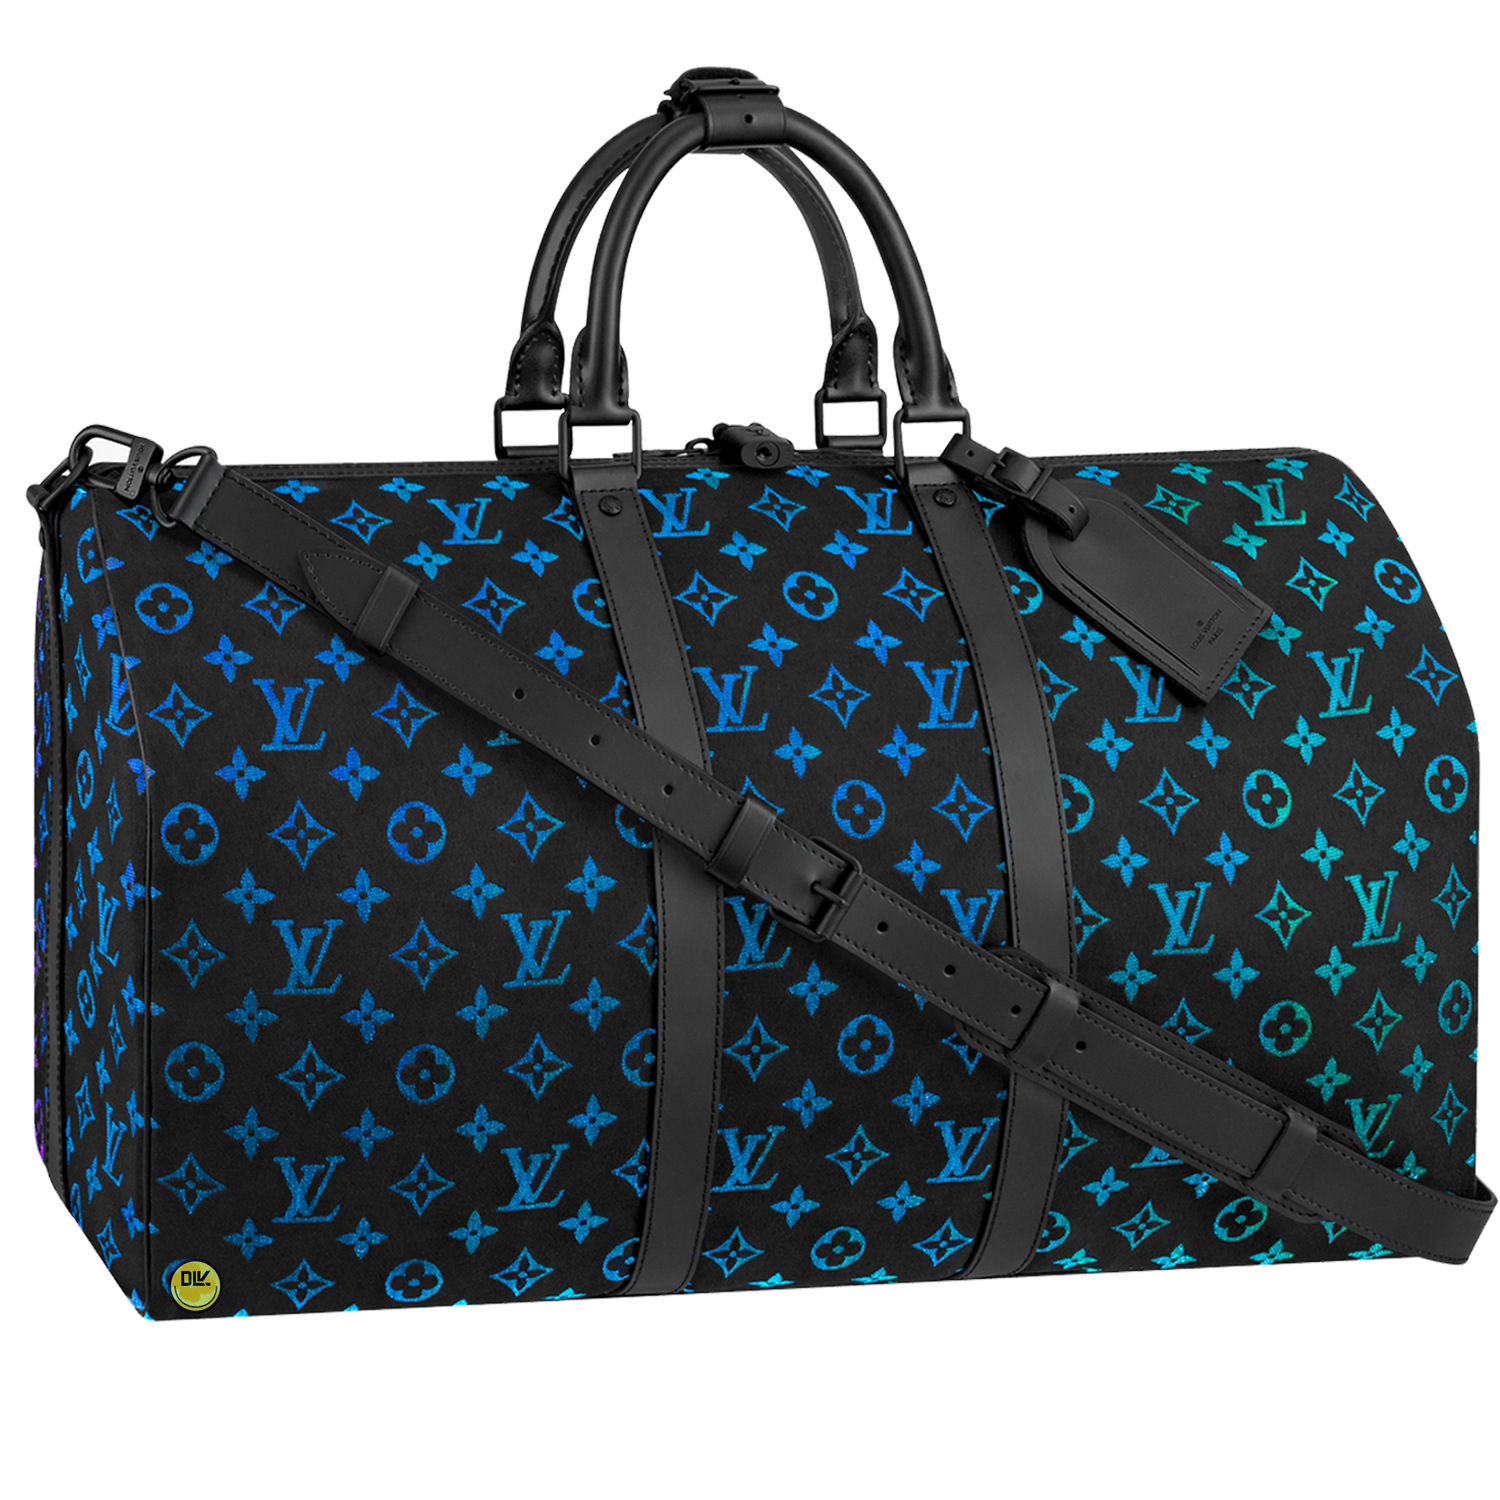 KEEPALL 50B - ± €15,000 $20,000M44770FIBER OPTIC